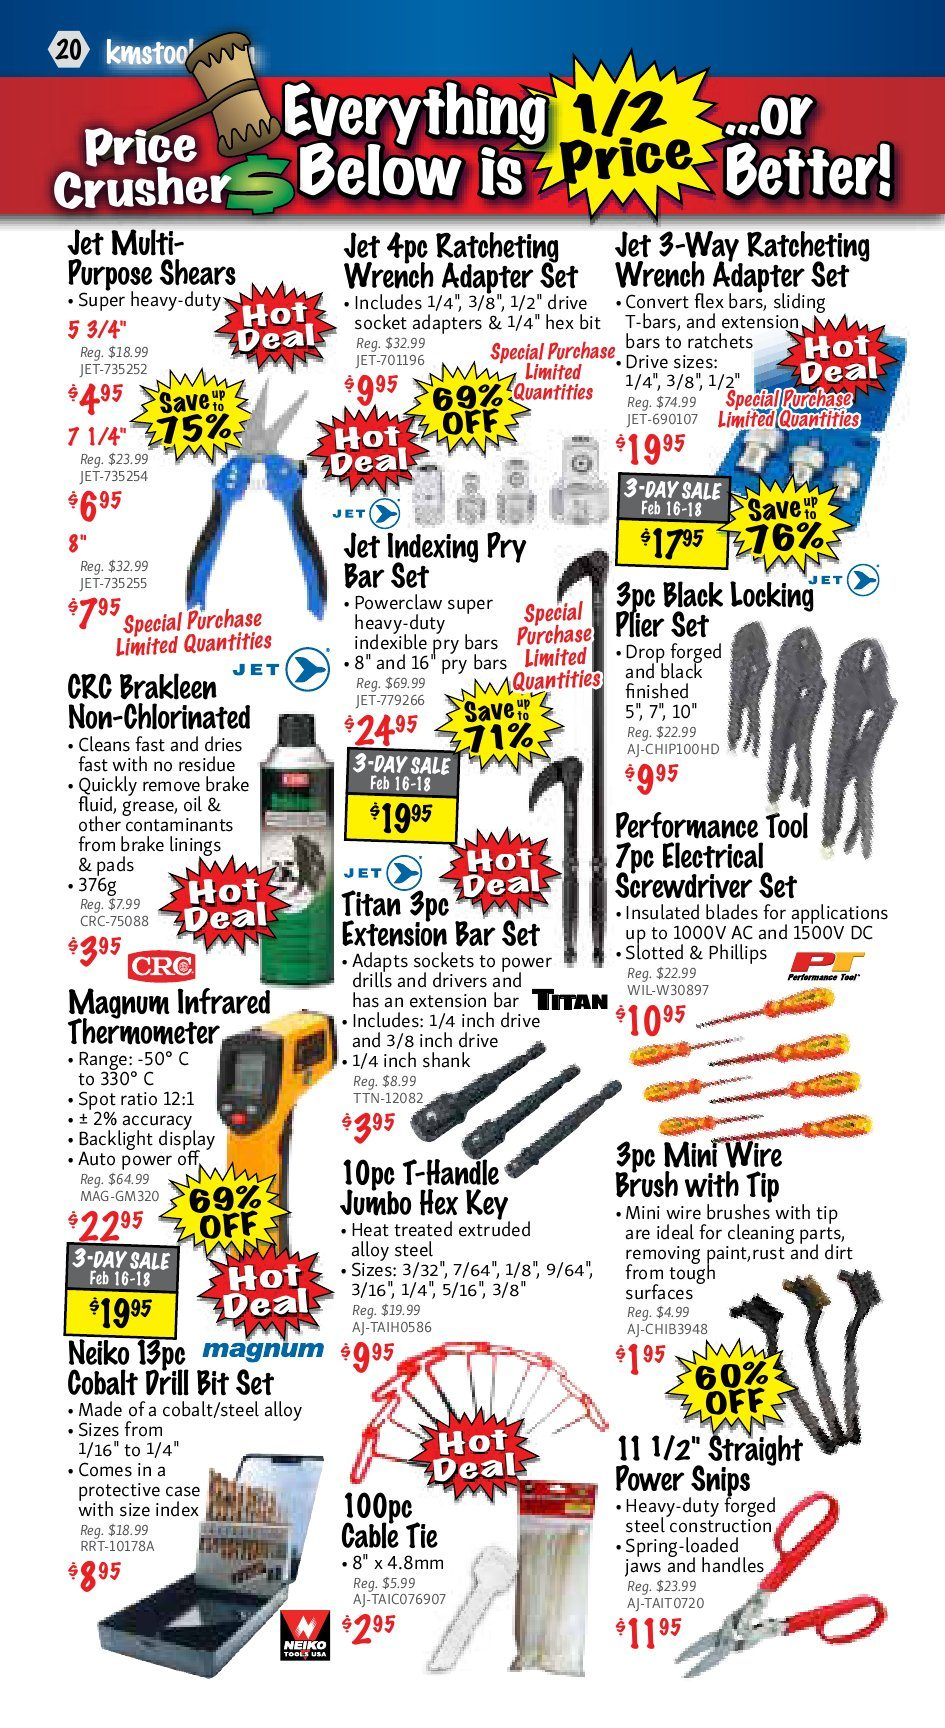 Kms Tools Weekly Flyer Welding Sale Feb 1 28 Use Toggle Switch 20amp Back And Side Wired Singlepole 81200 W